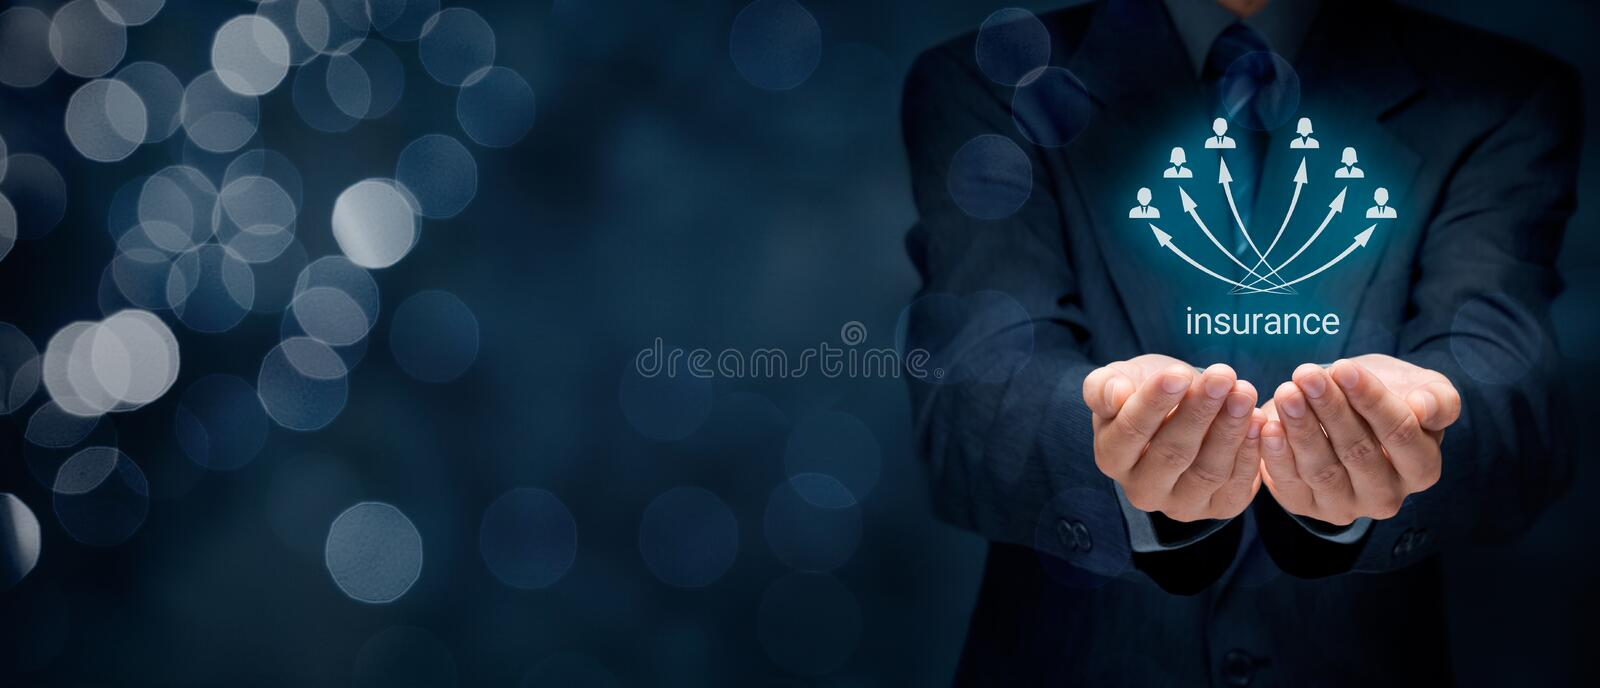 Insurance concept. Insurance agent and insurance company customers. Wide banner composition with bokeh in background royalty free stock image